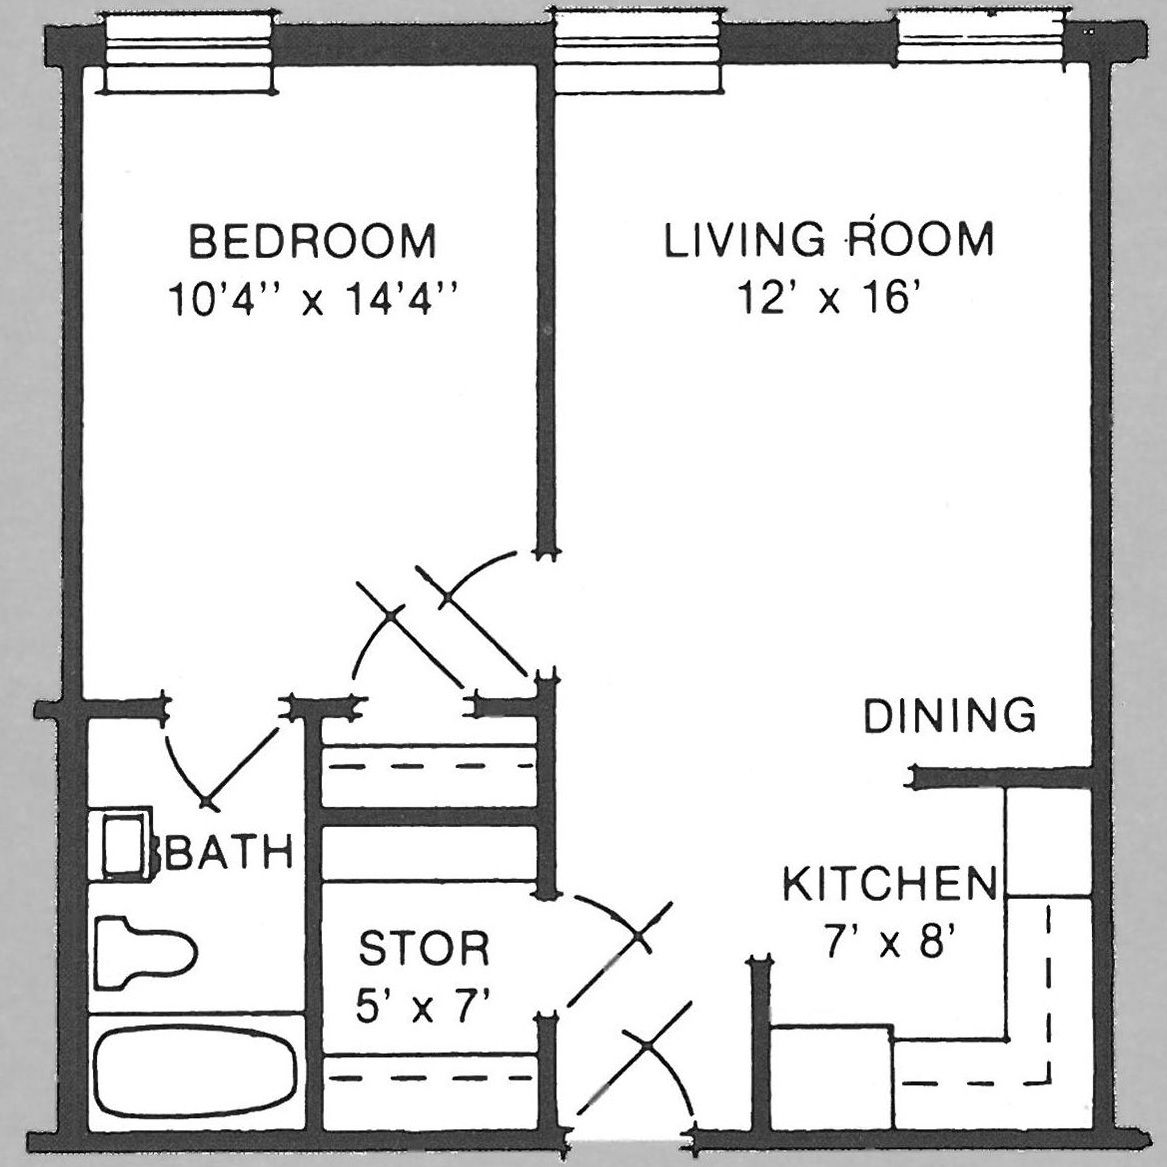 500 Sqft 2 Bedroom Apartment Ideas Square Foot House Plan With Loft Small House Plans Apartment Floor Plans